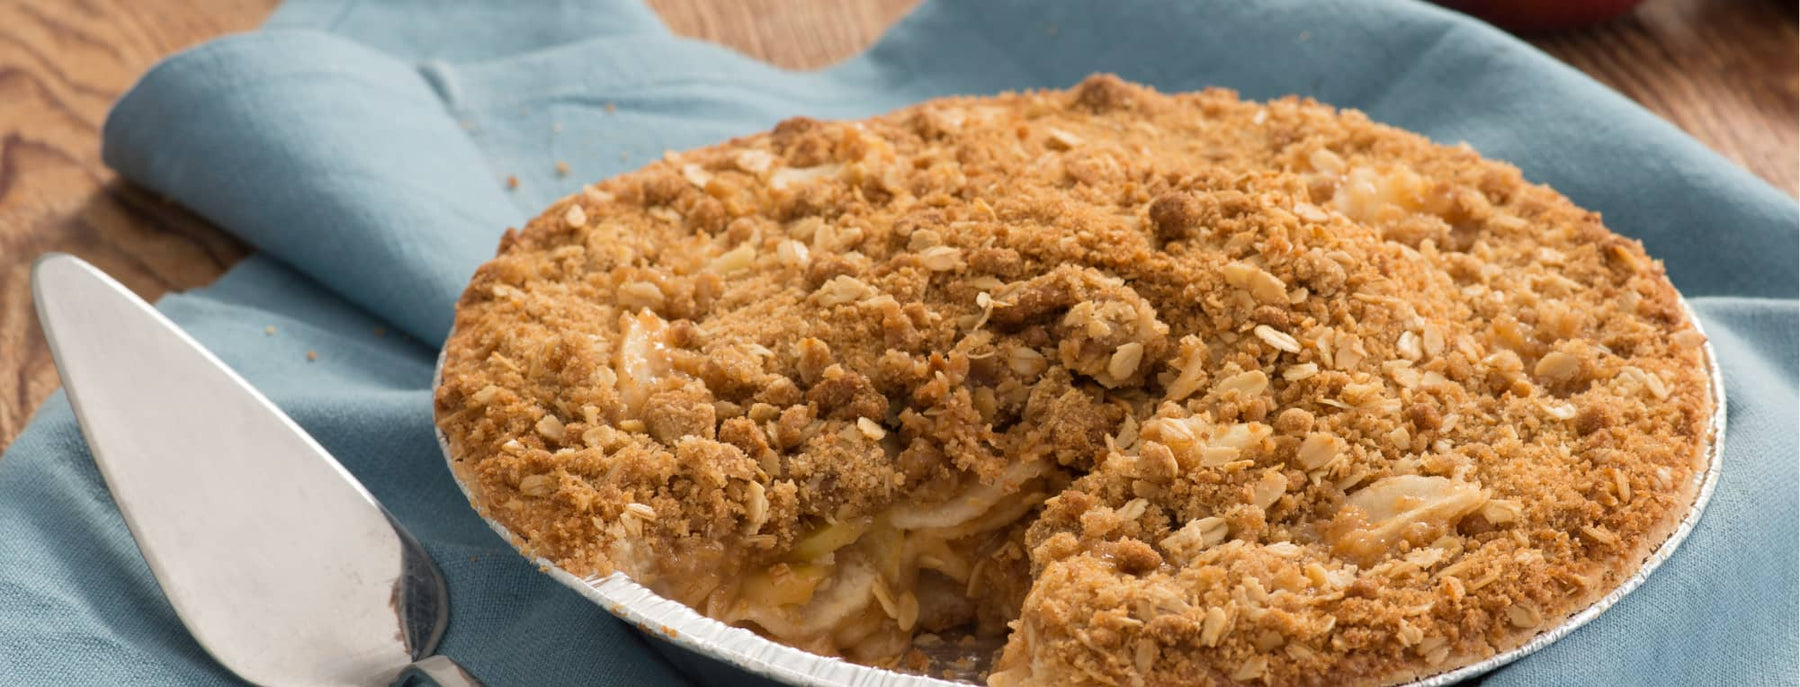 Apple crumble pie, with one slice cut out. The pie tin is on a blue napkin, with a pie serving tool next to it